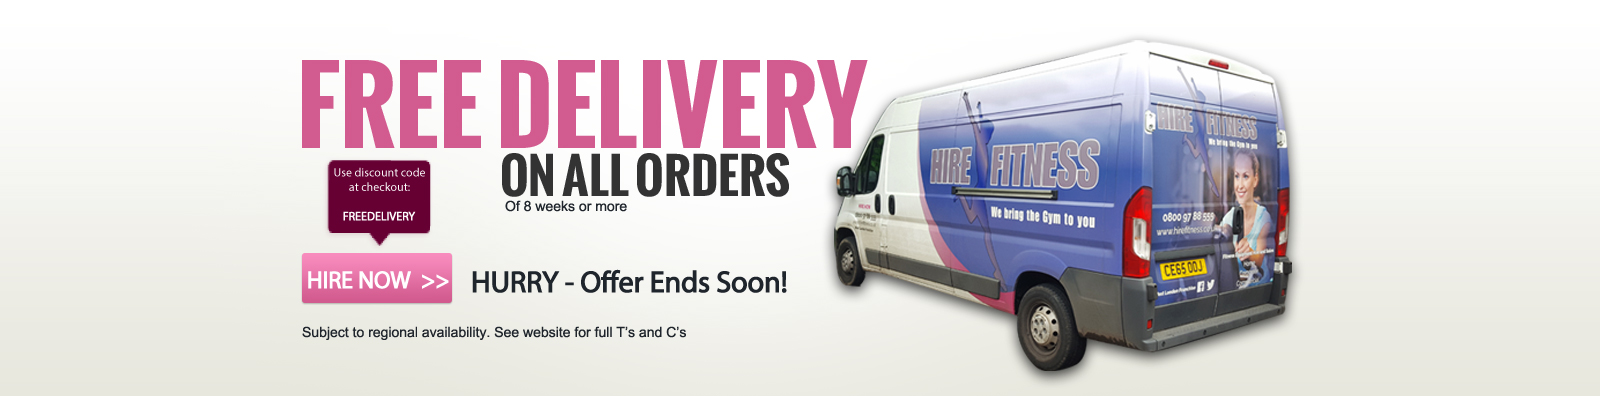 free-delivery-uk-banner-01b-updated-8-weeks-or-more